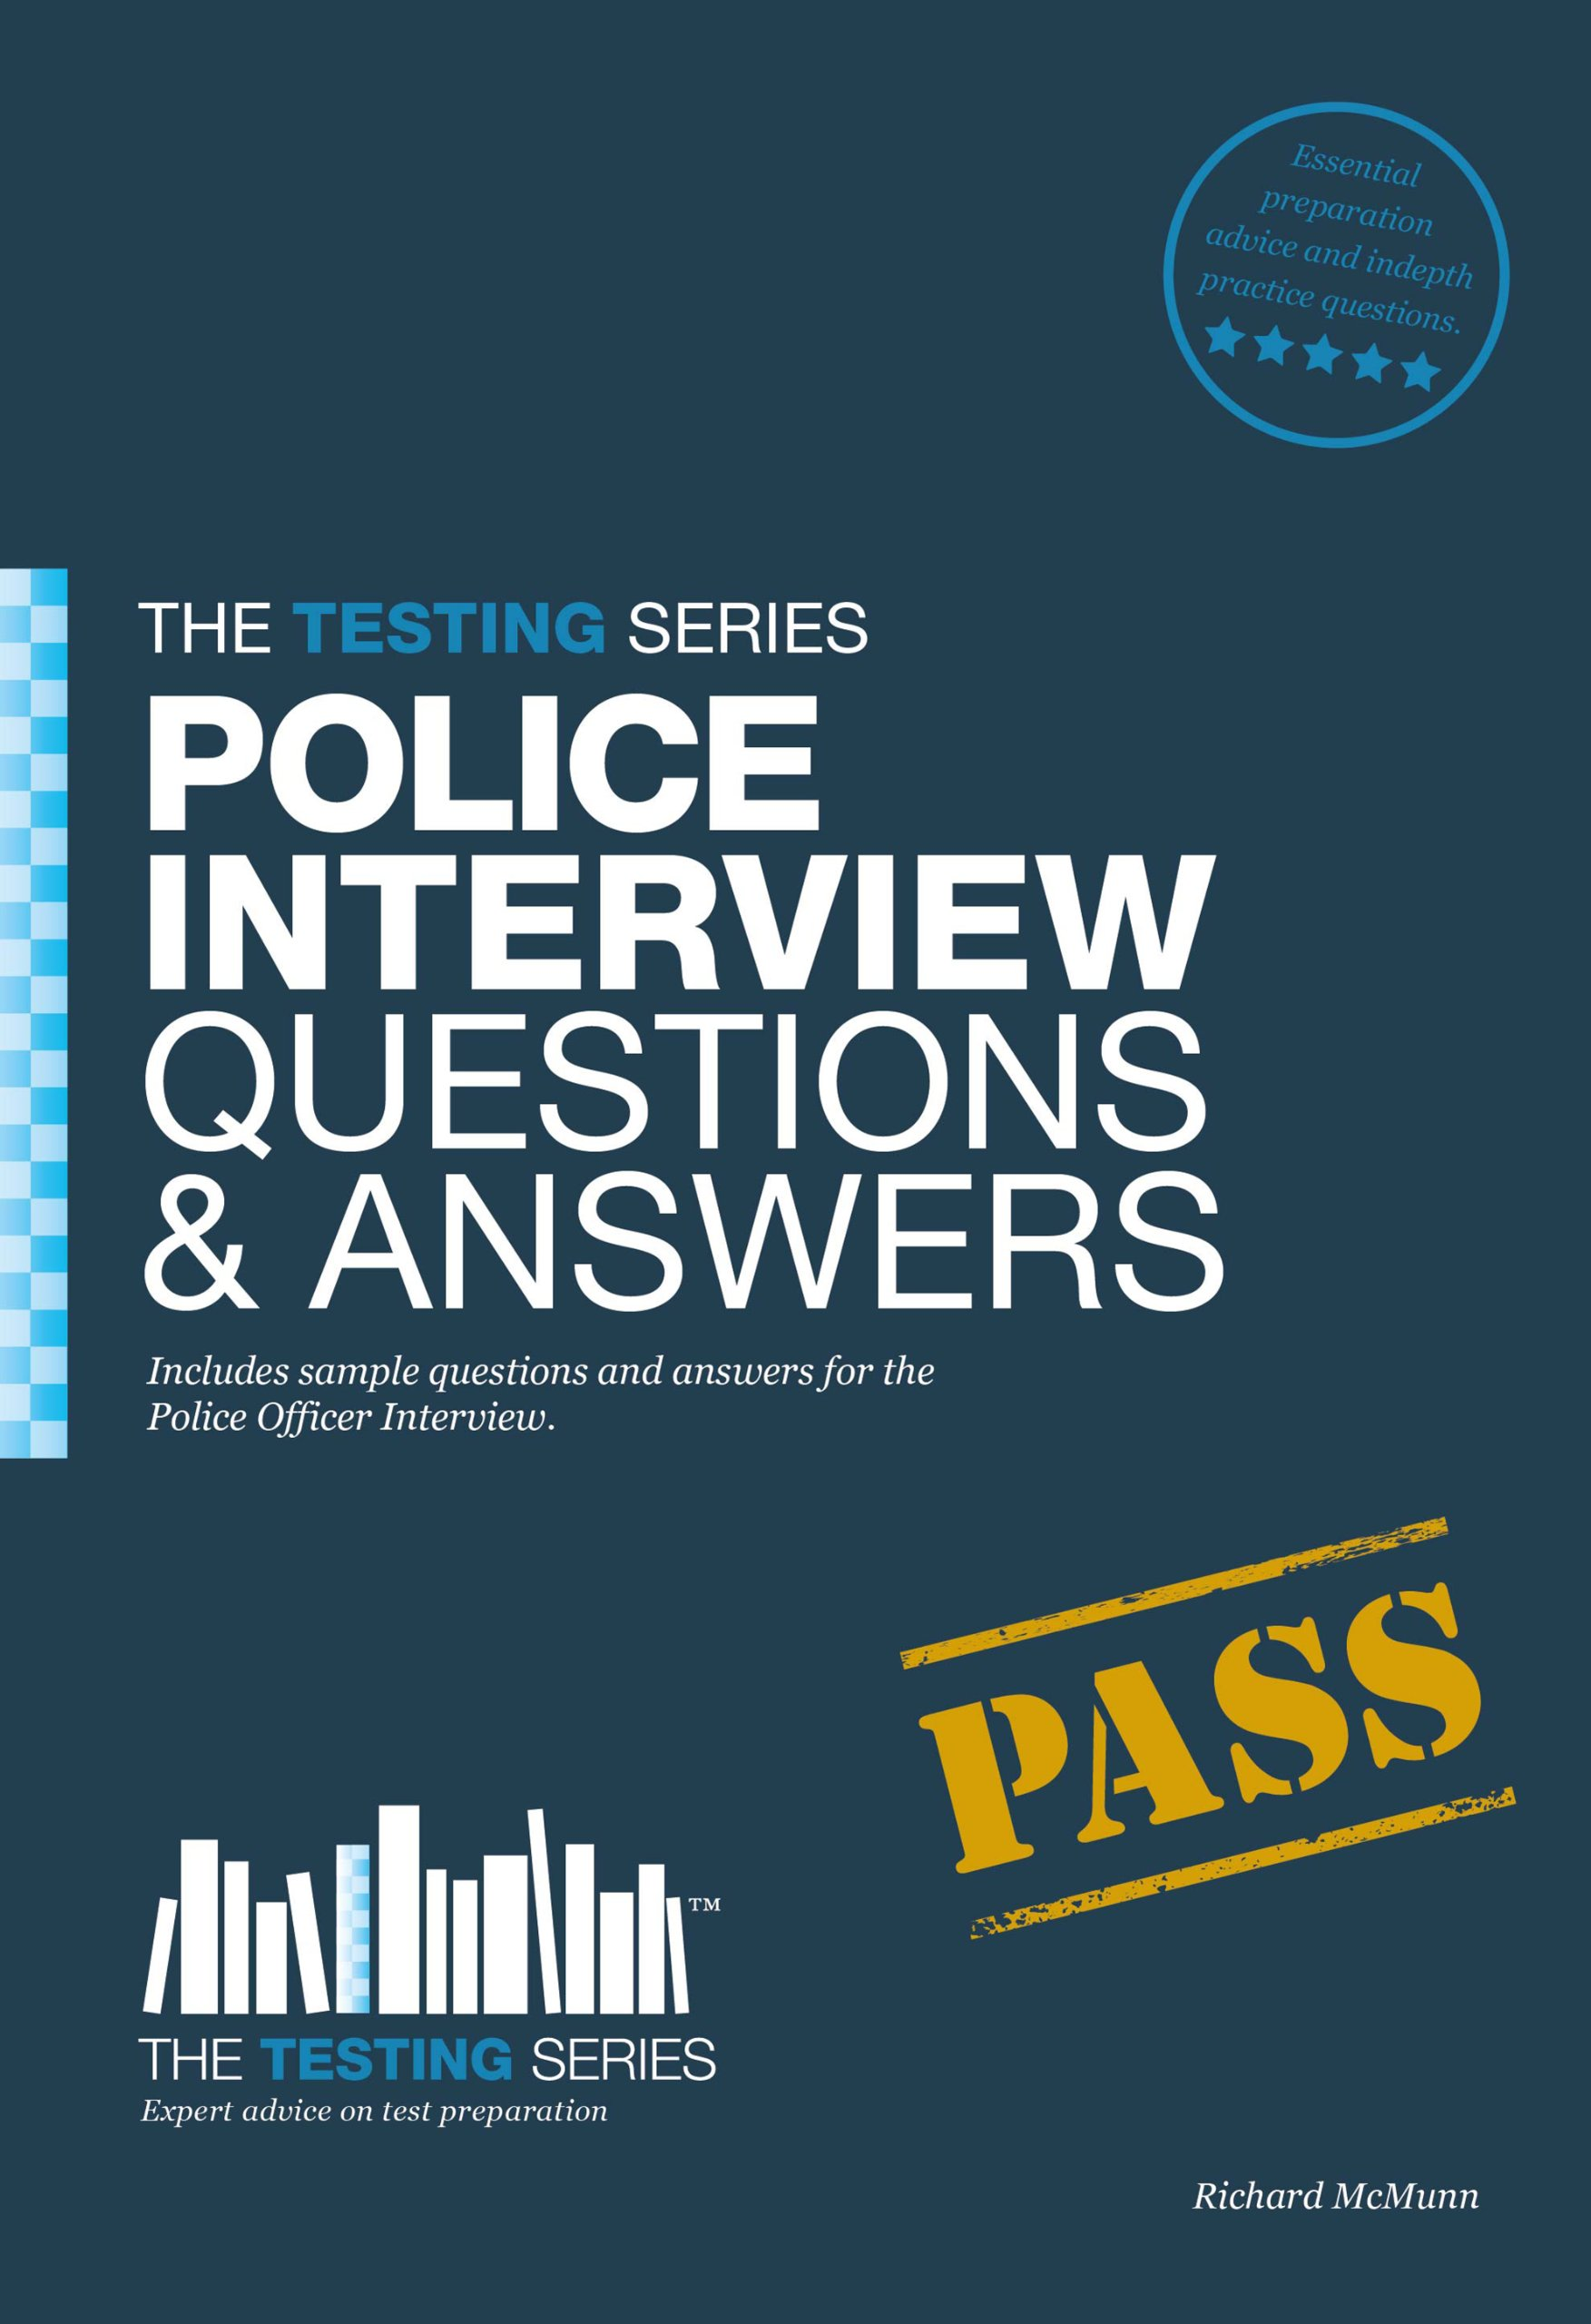 police officer interview questions and answers workbook testing police officer interview questions and answers workbook testing series amazon co uk richard mcmunn books